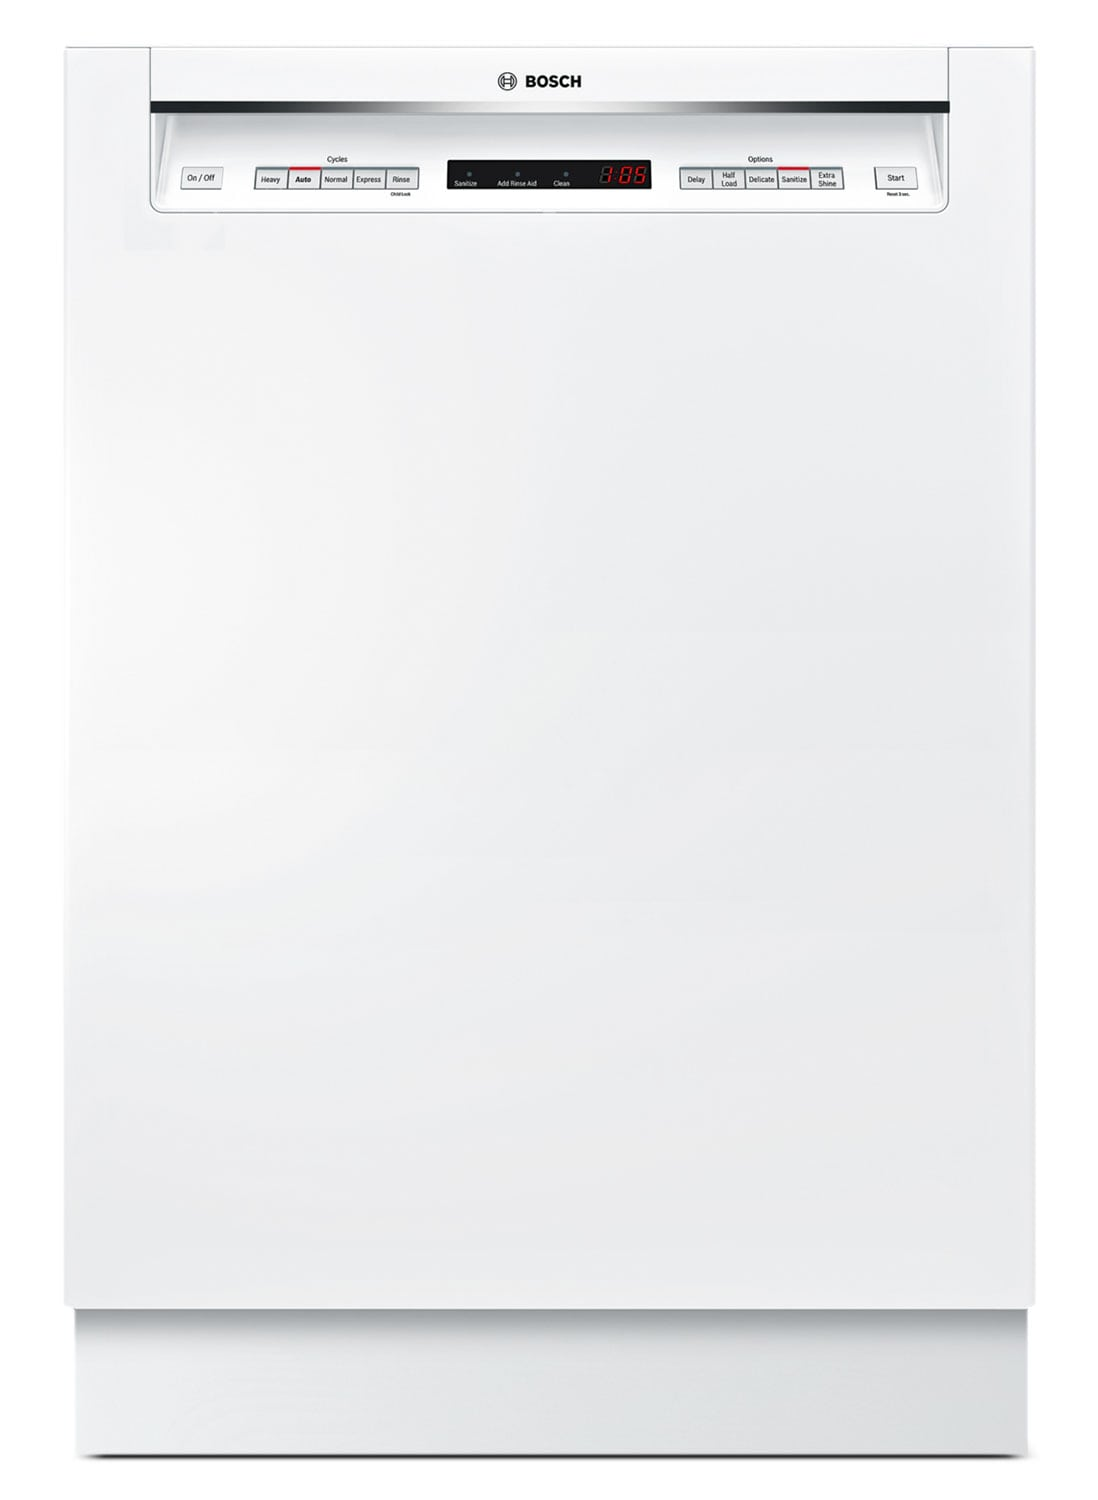 "Clean-Up - Bosch White 24"" Dishwasher - SHE65T52UC"